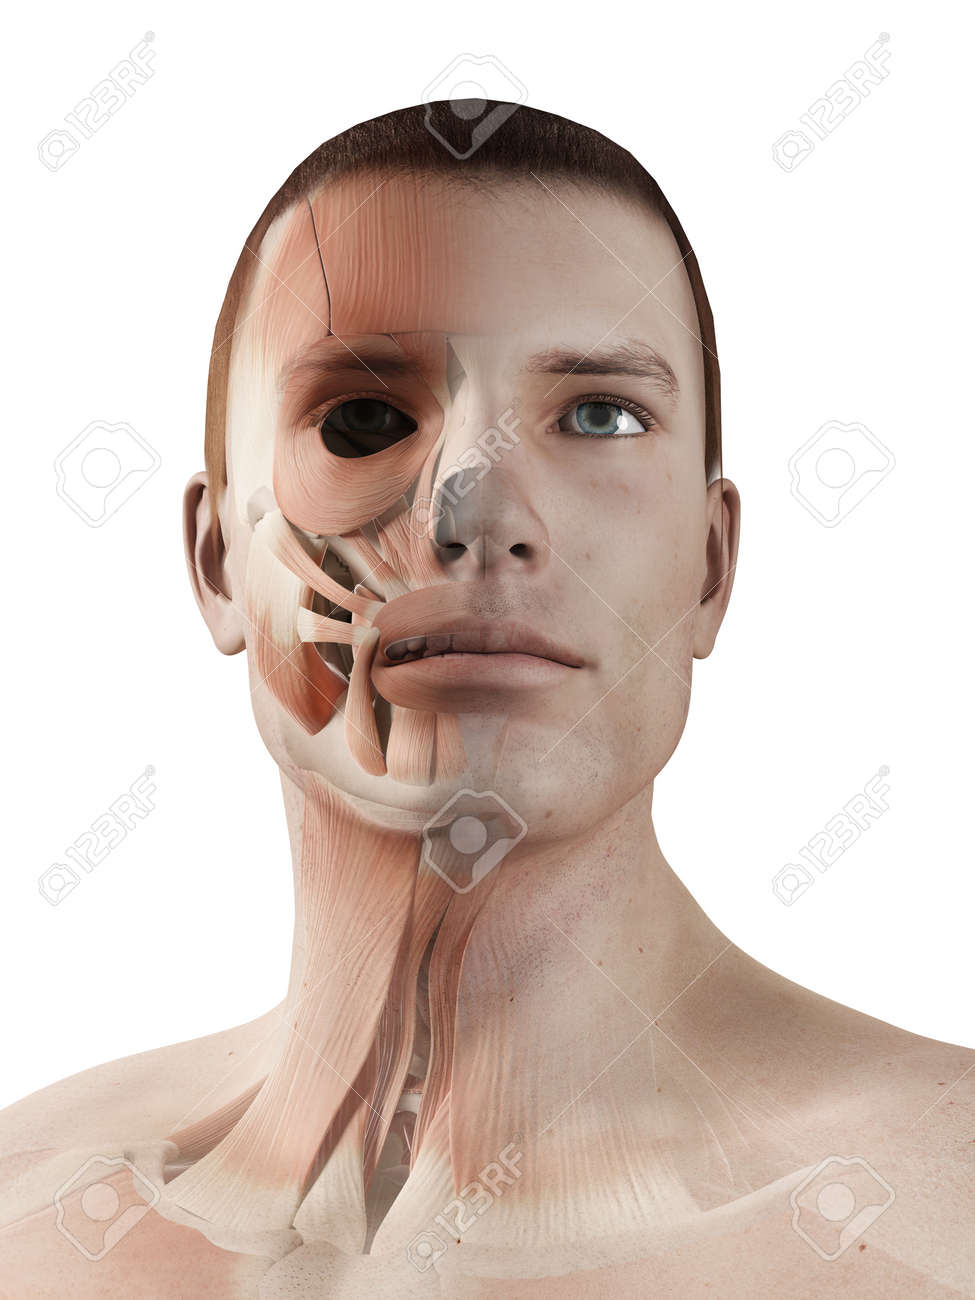 Medical 3d Illustration - Male Muscle System - Facial Muscles Stock ...